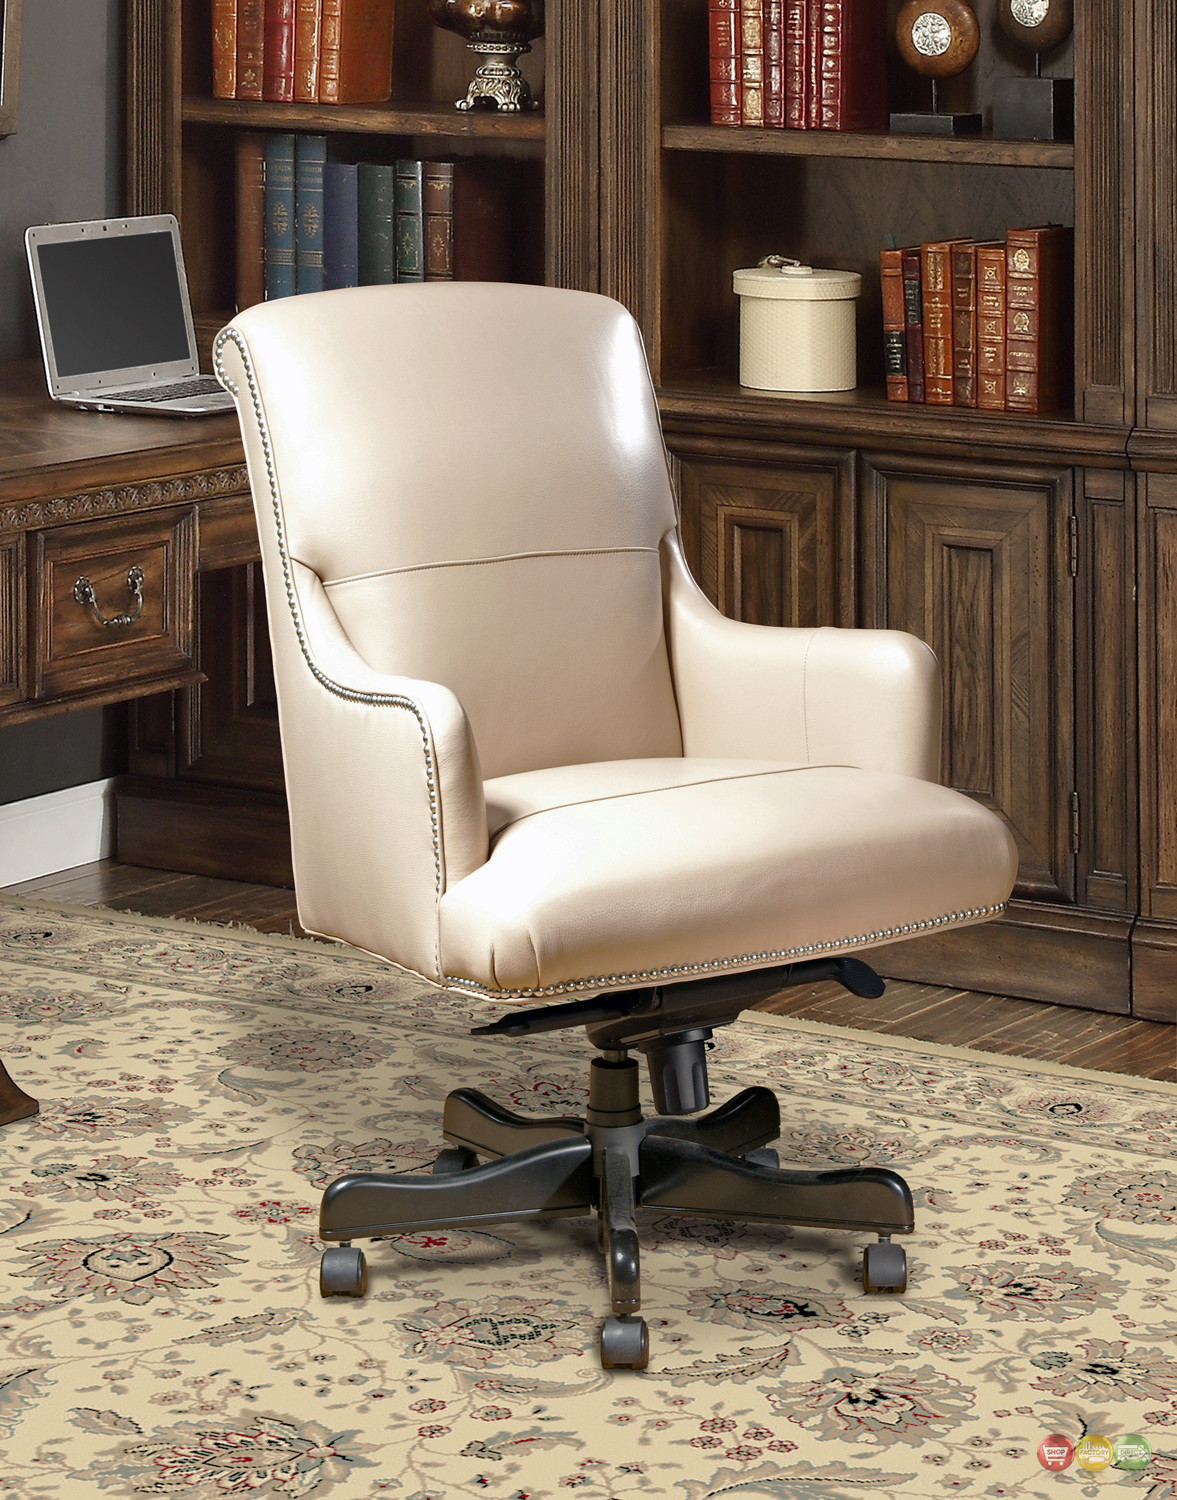 traditional office furniture desk chair beige leather